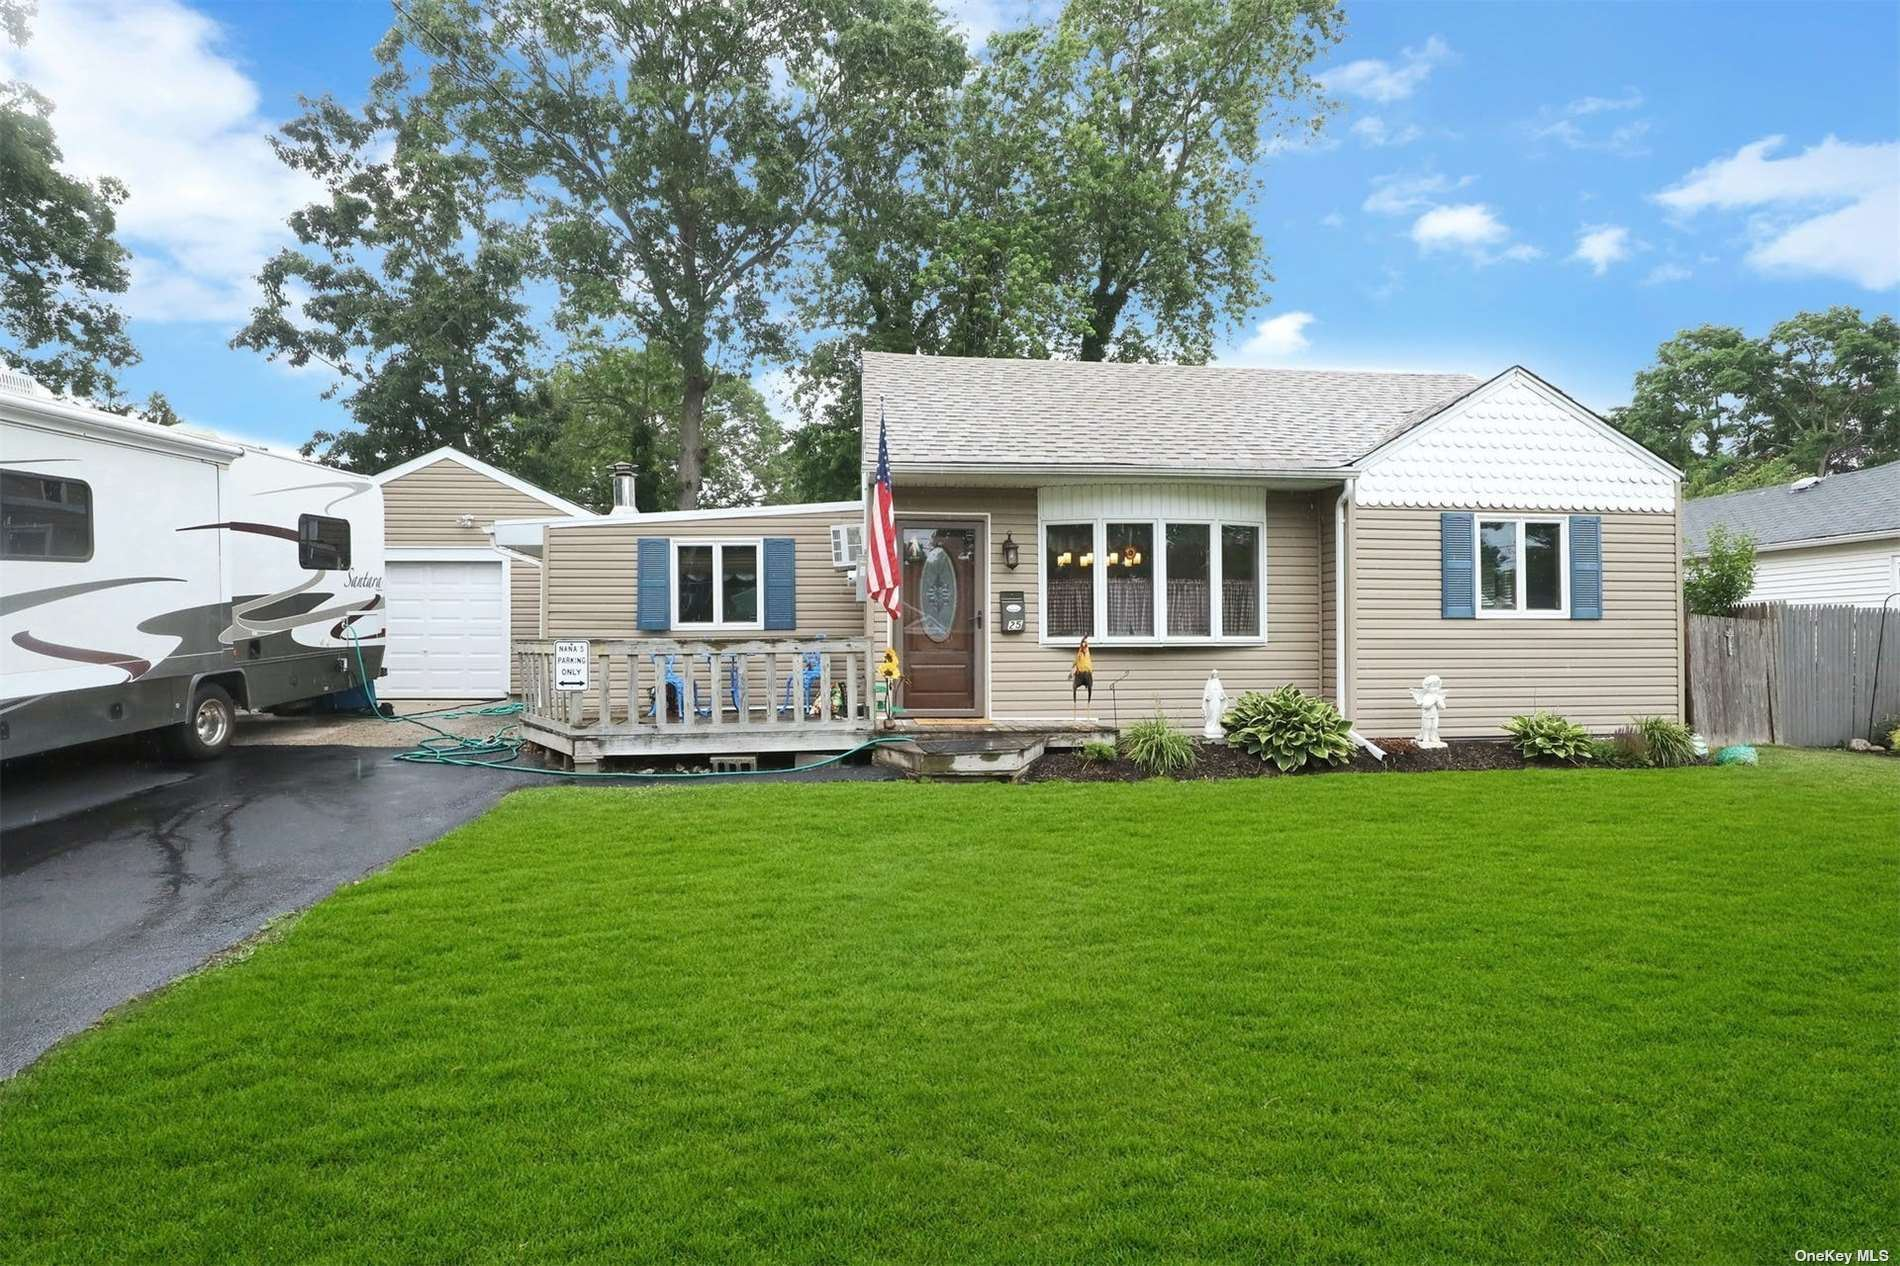 25 Snyder Street, Patchogue, NY 11772 - MLS#: 3326658